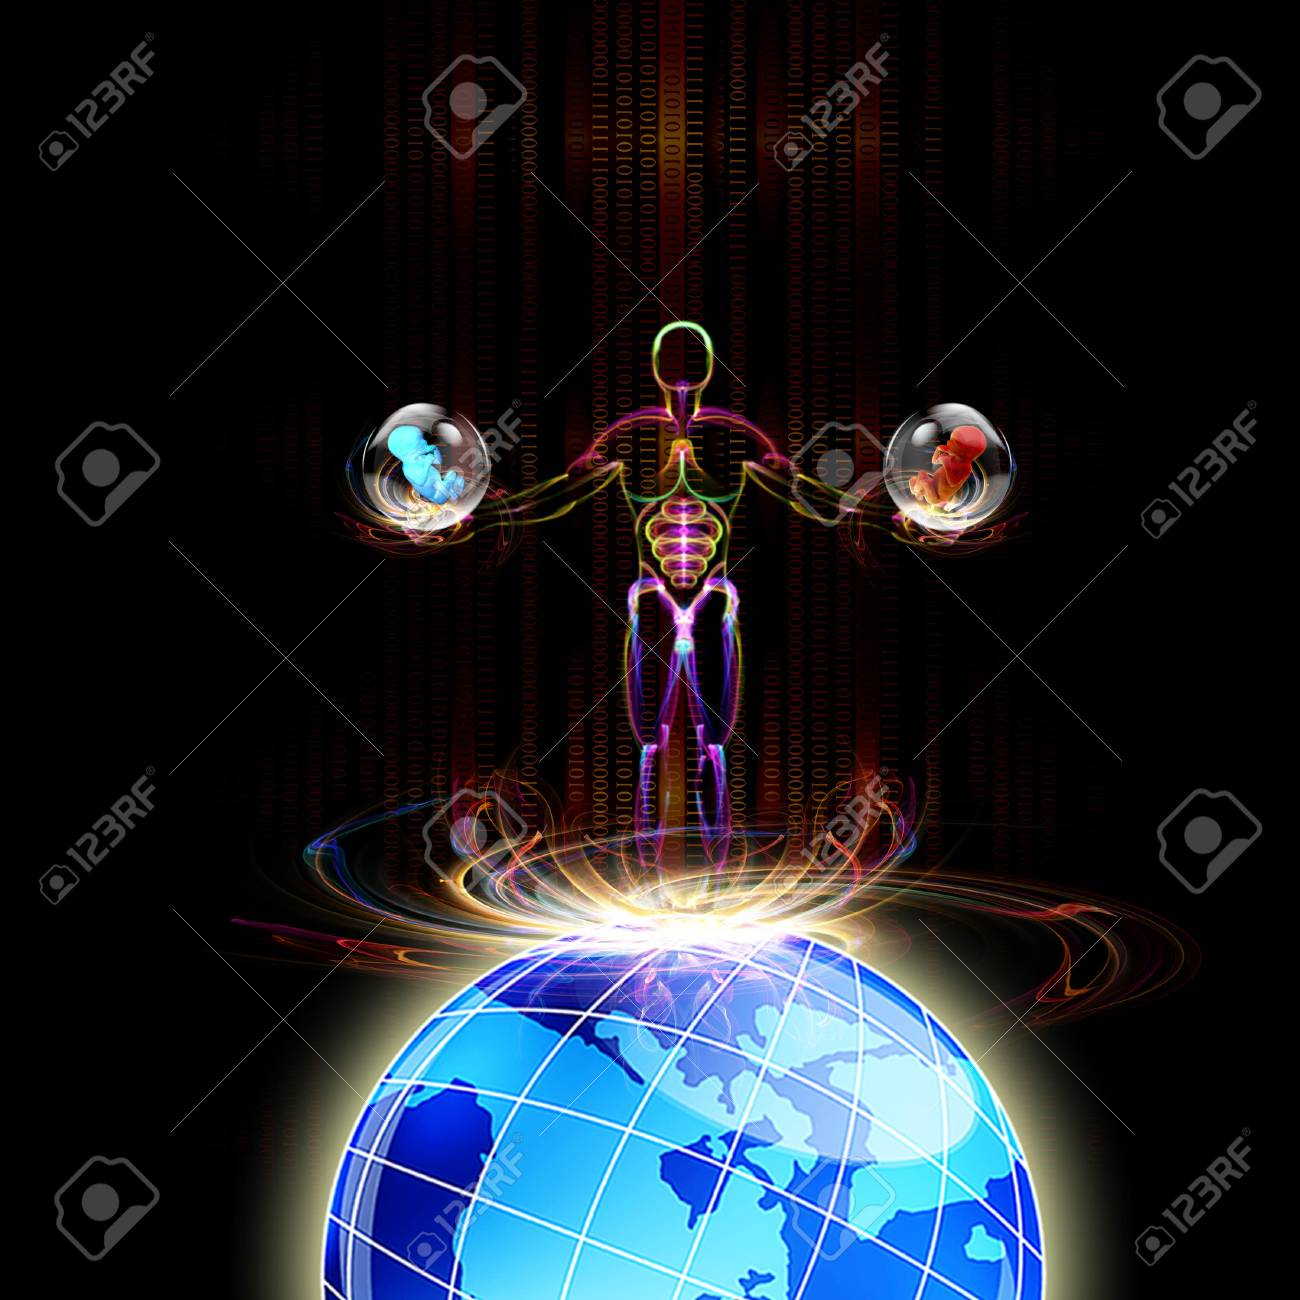 Genetic engineering Scientific innovative  research Stock Photo - 16514616